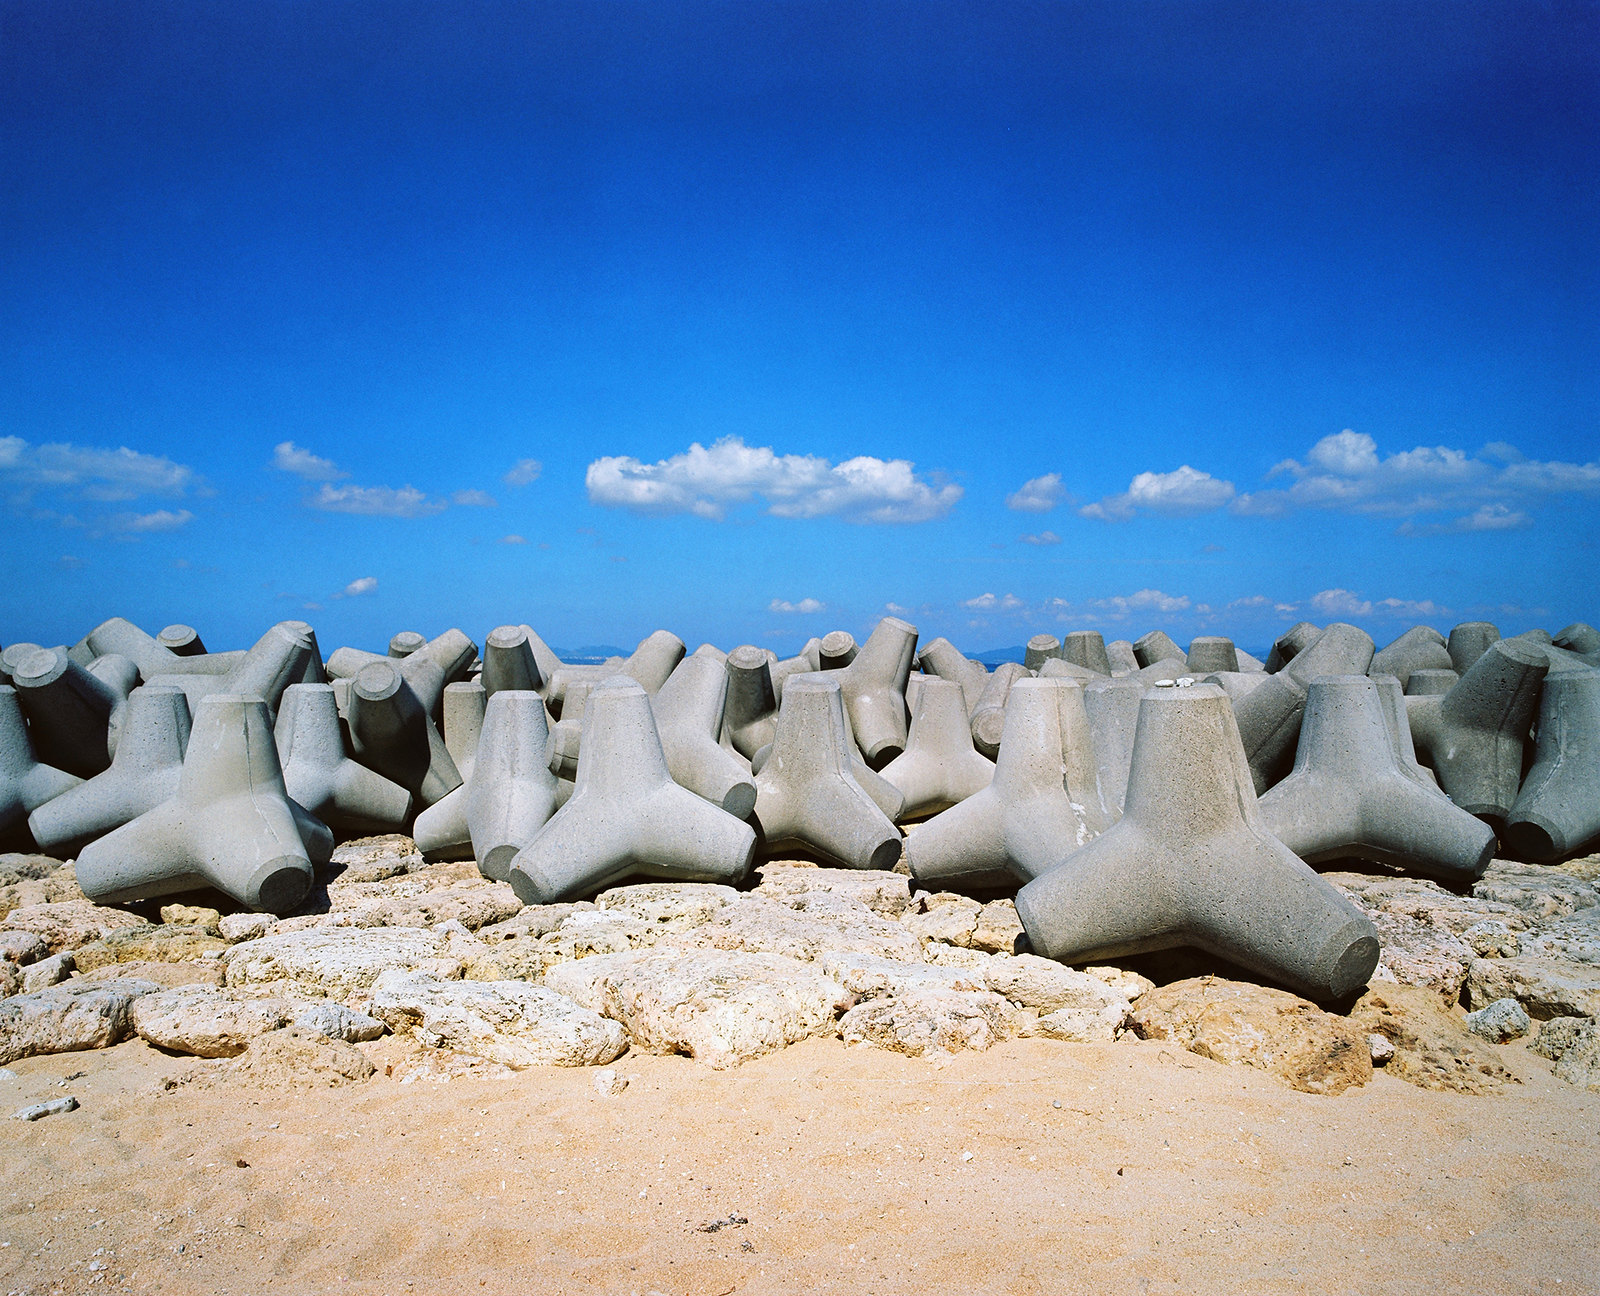 More Tetrapods